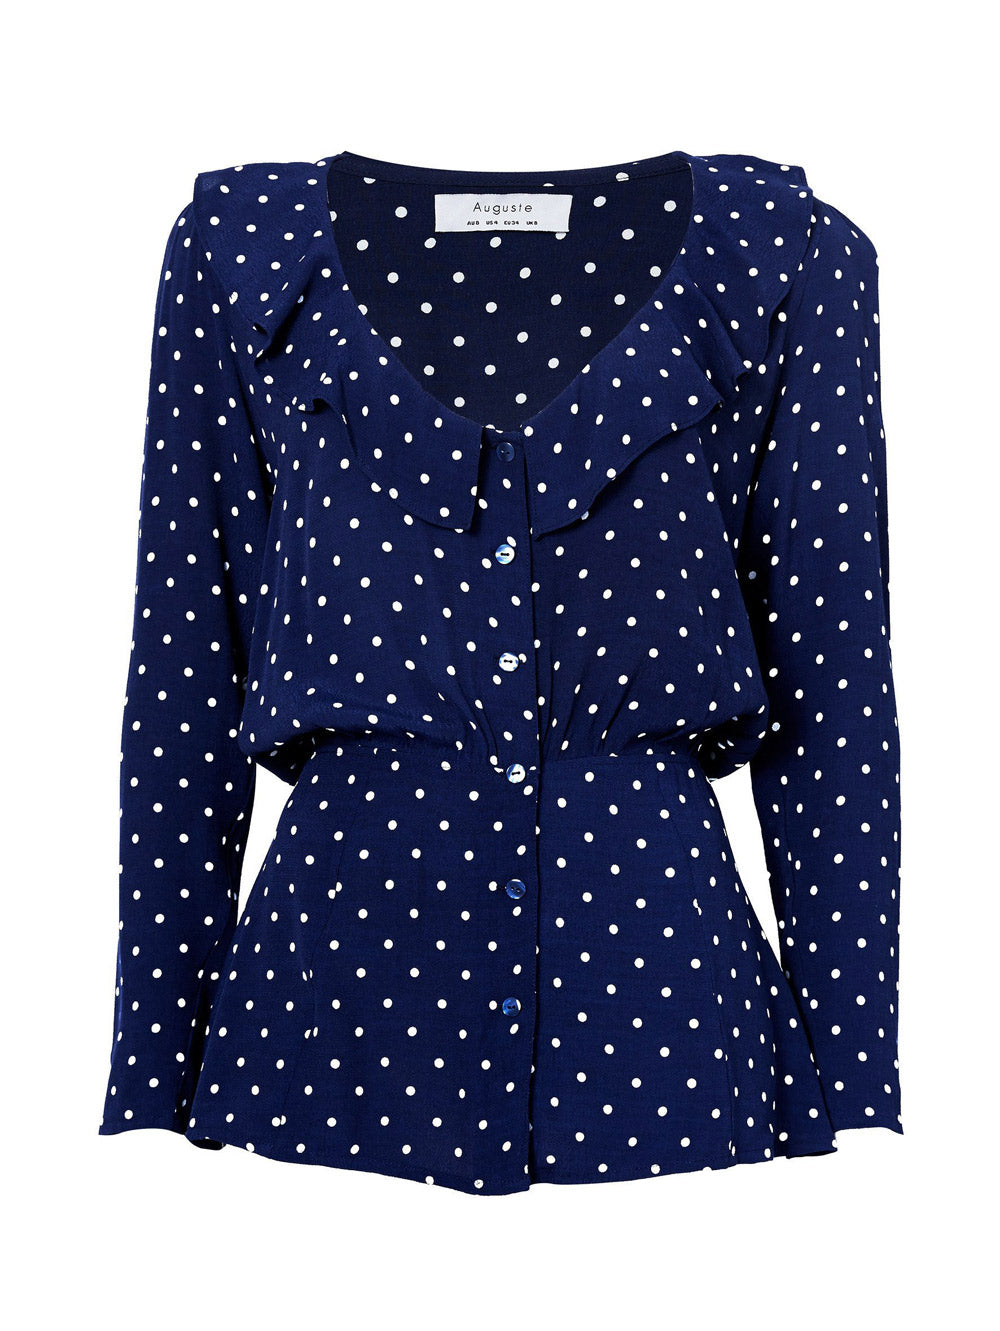 AUGUSTE Lilly Shirt Classic Polka Dot